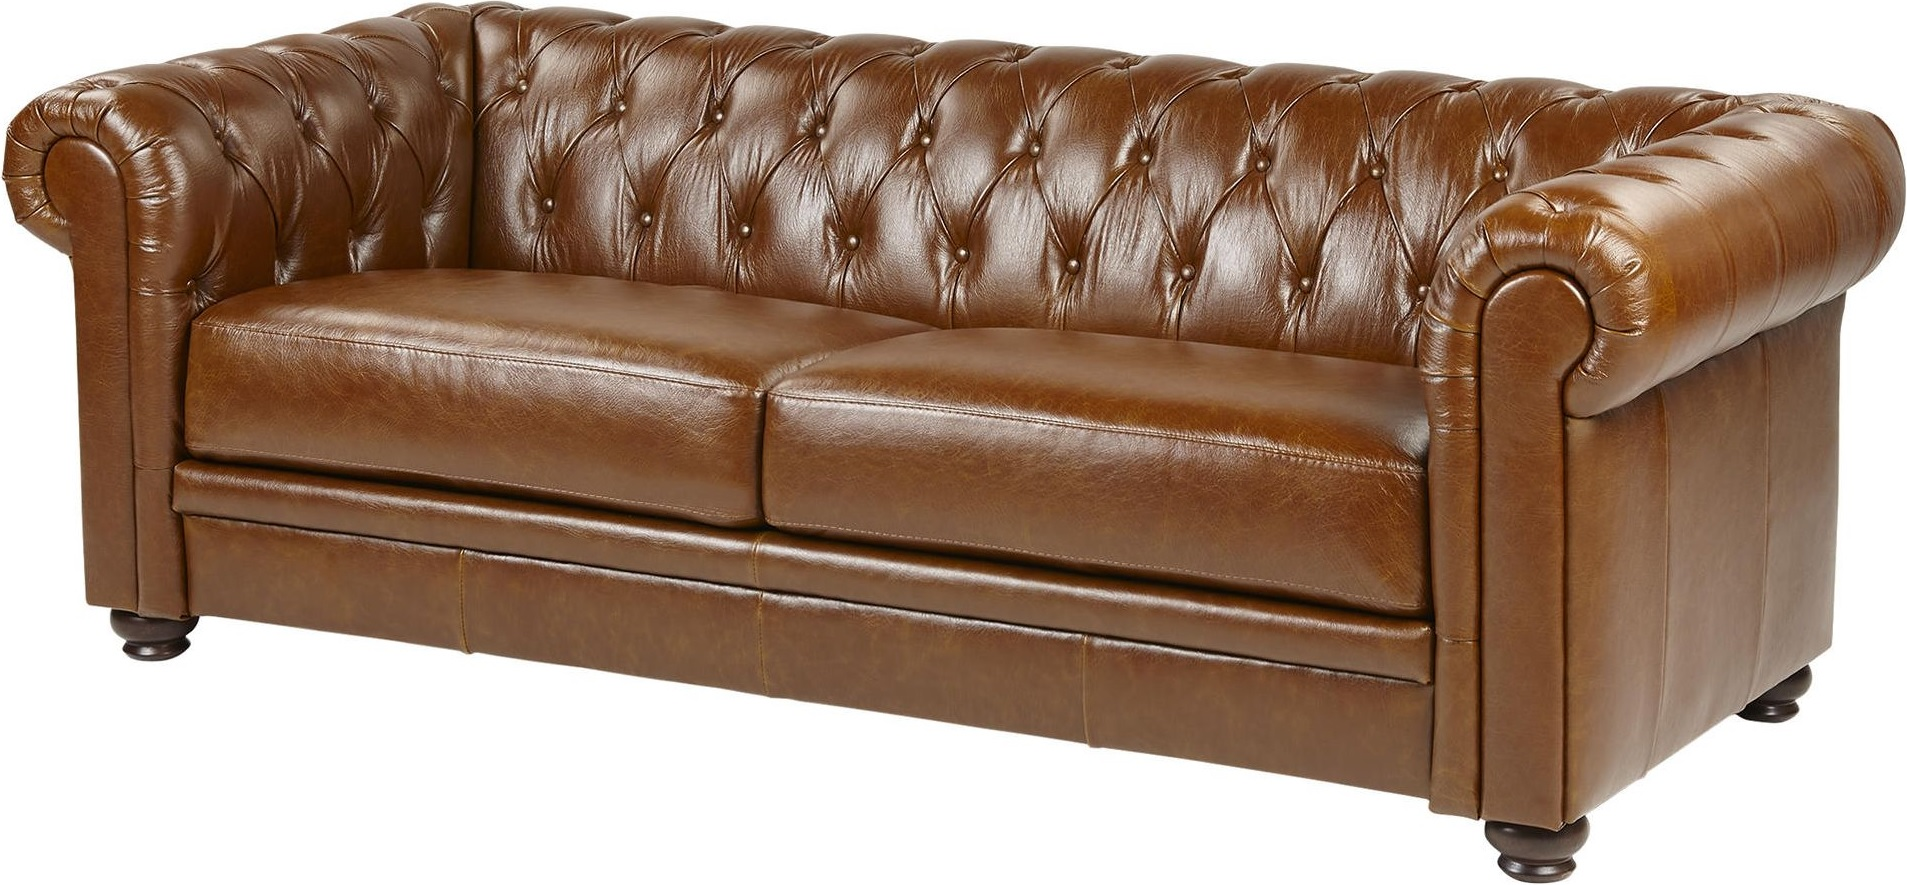 leather chesterfield sofa beige corner sofas on financing new mortimer large 3 seater real